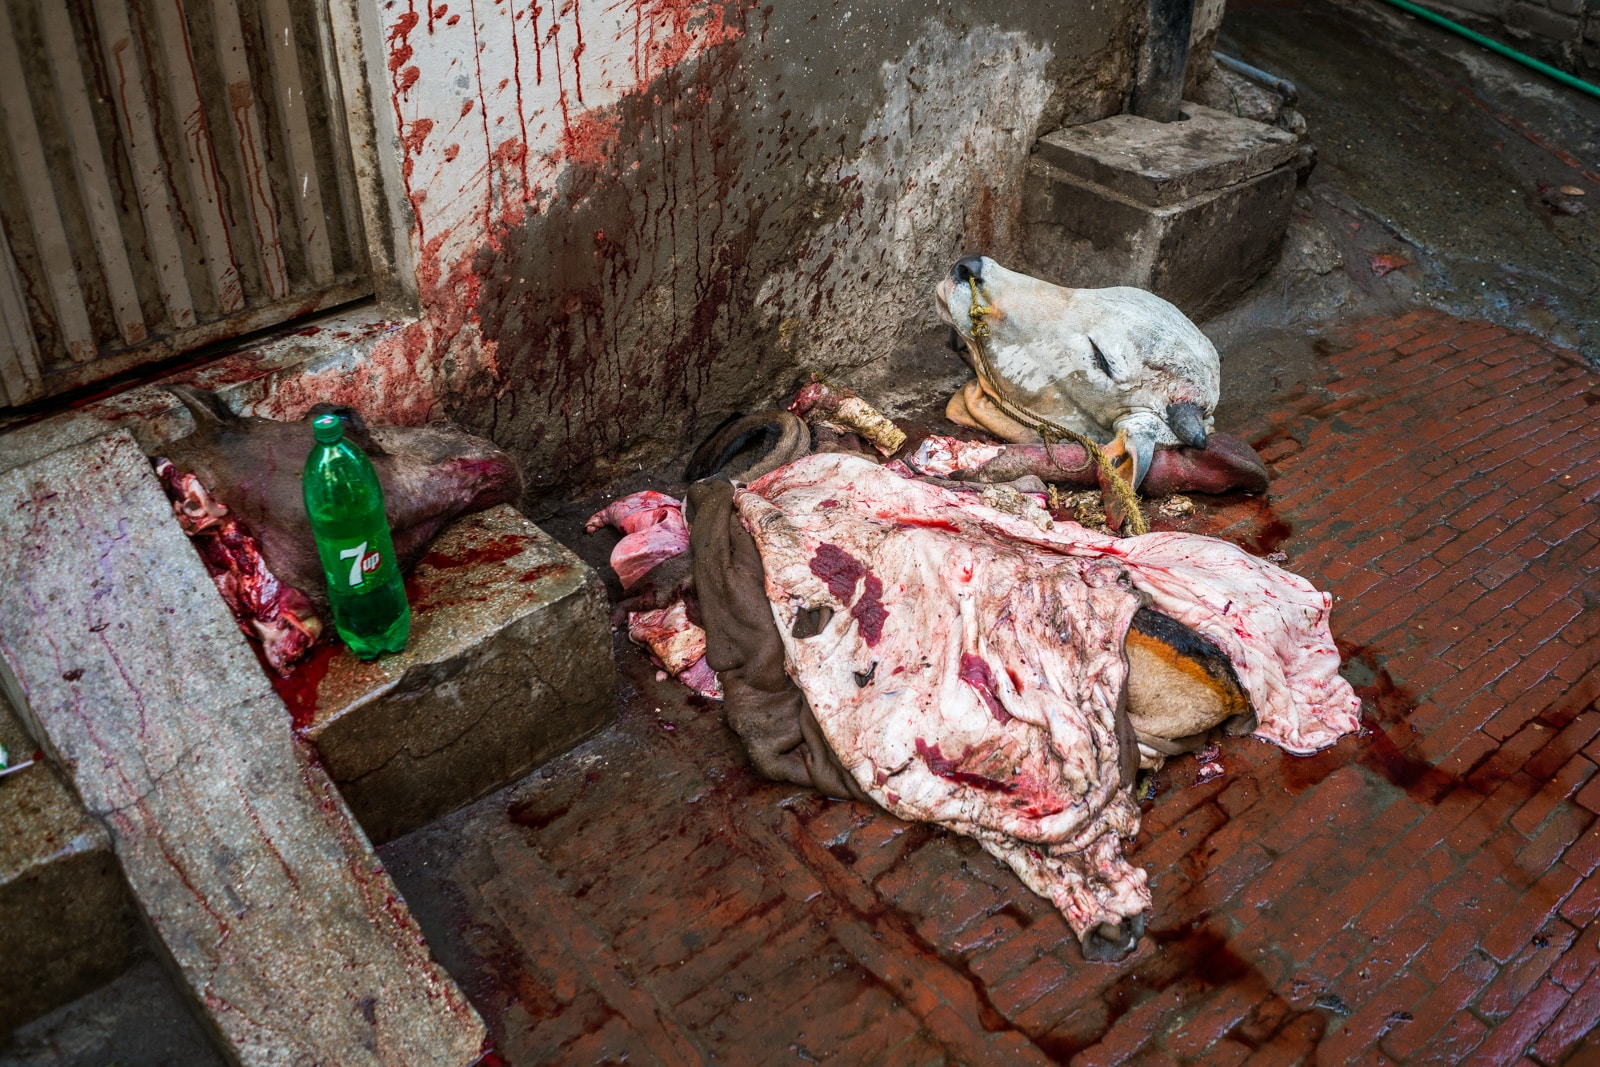 Celebrating Eid al-Adha in Lahore, Pakistan - Cow heads and skins on the streets of Lahore - Lost With Purpose travel blog